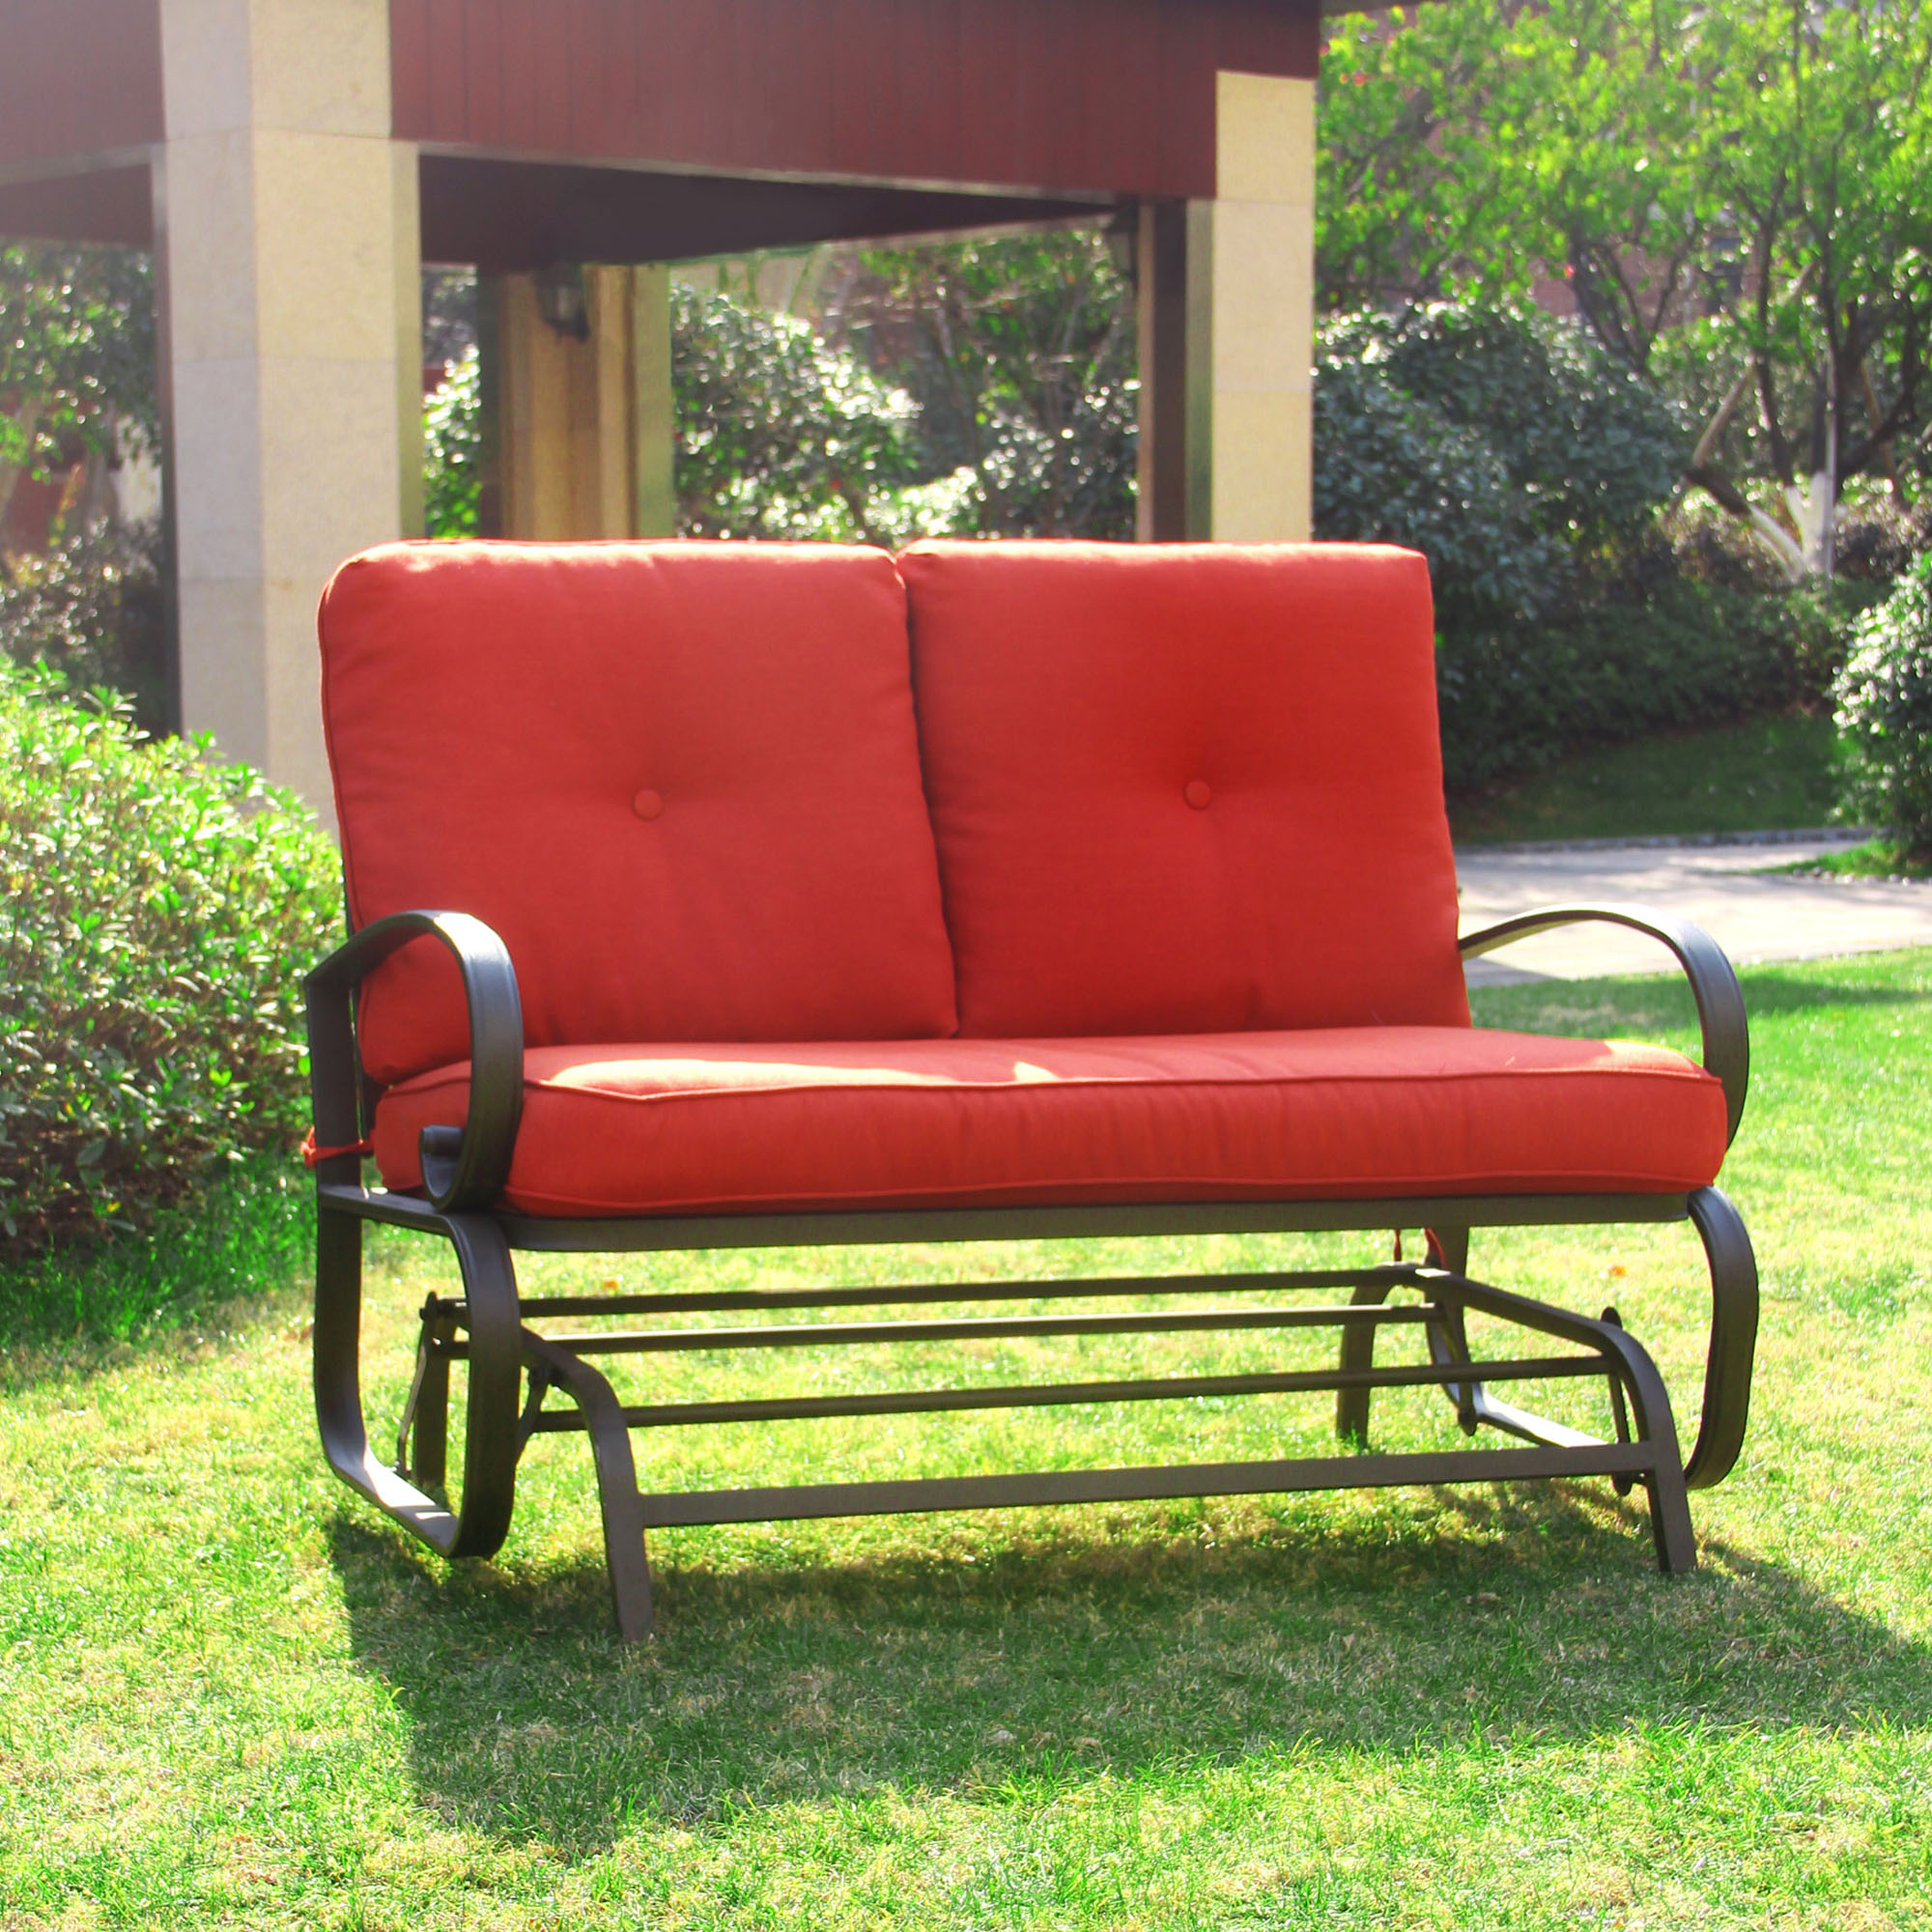 Cloud Mountain Outdoor Patio 2 Person Loveseat Cushioned Rocking Bench  Furniture Swing Rocker Lounge Glider Chair